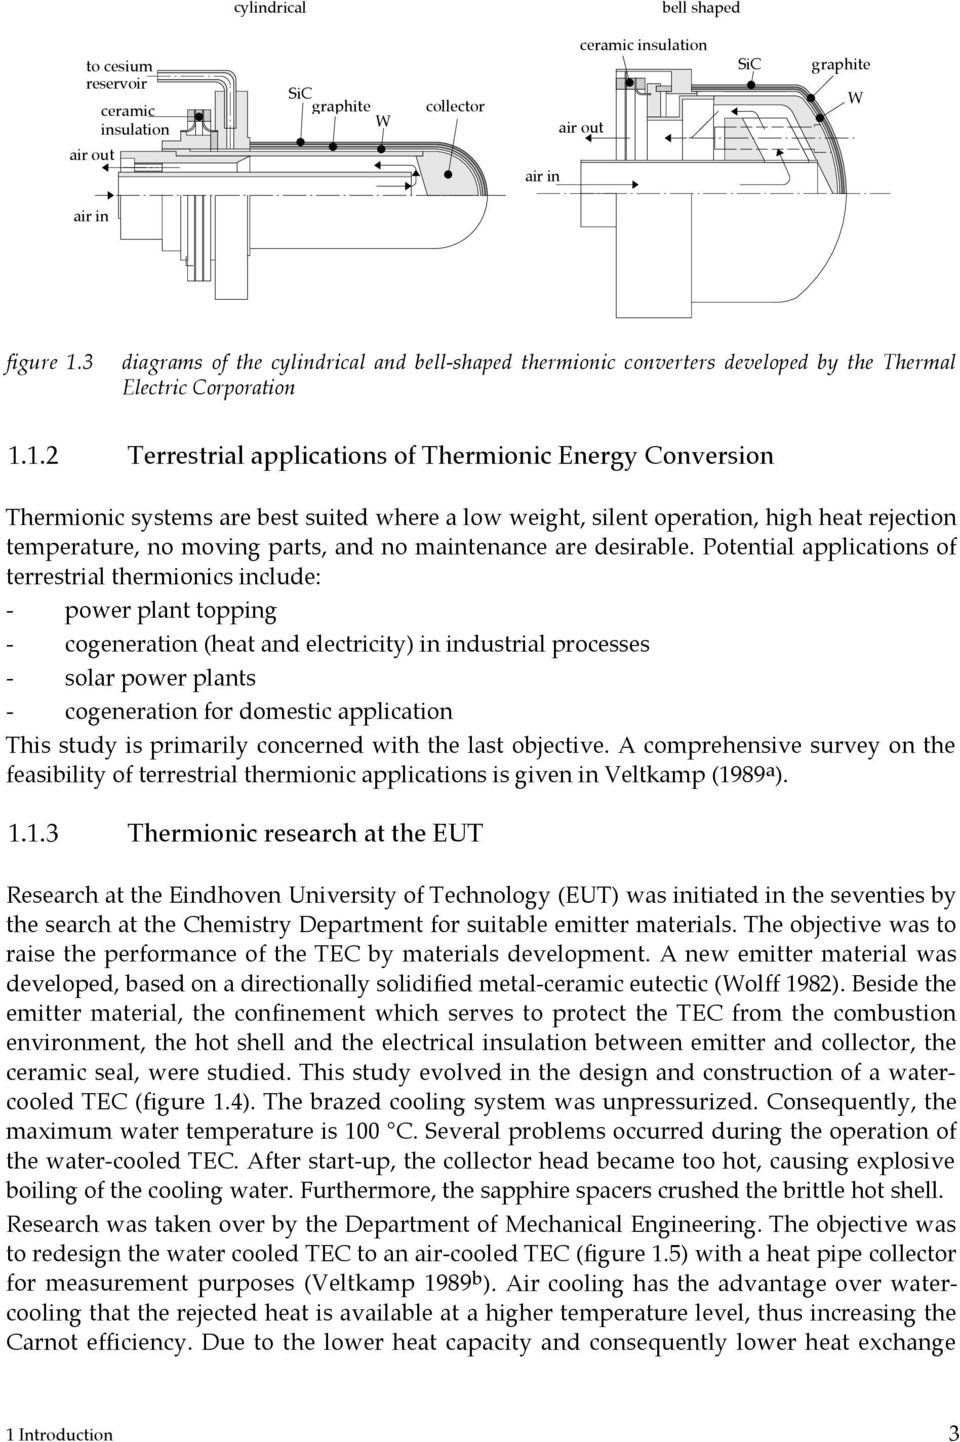 1.2 Terrestrial applications of Thermionic Energy Conversion Thermionic systems are best suited where a low weight, silent operation, high heat rejection temperature, no moving parts, and no